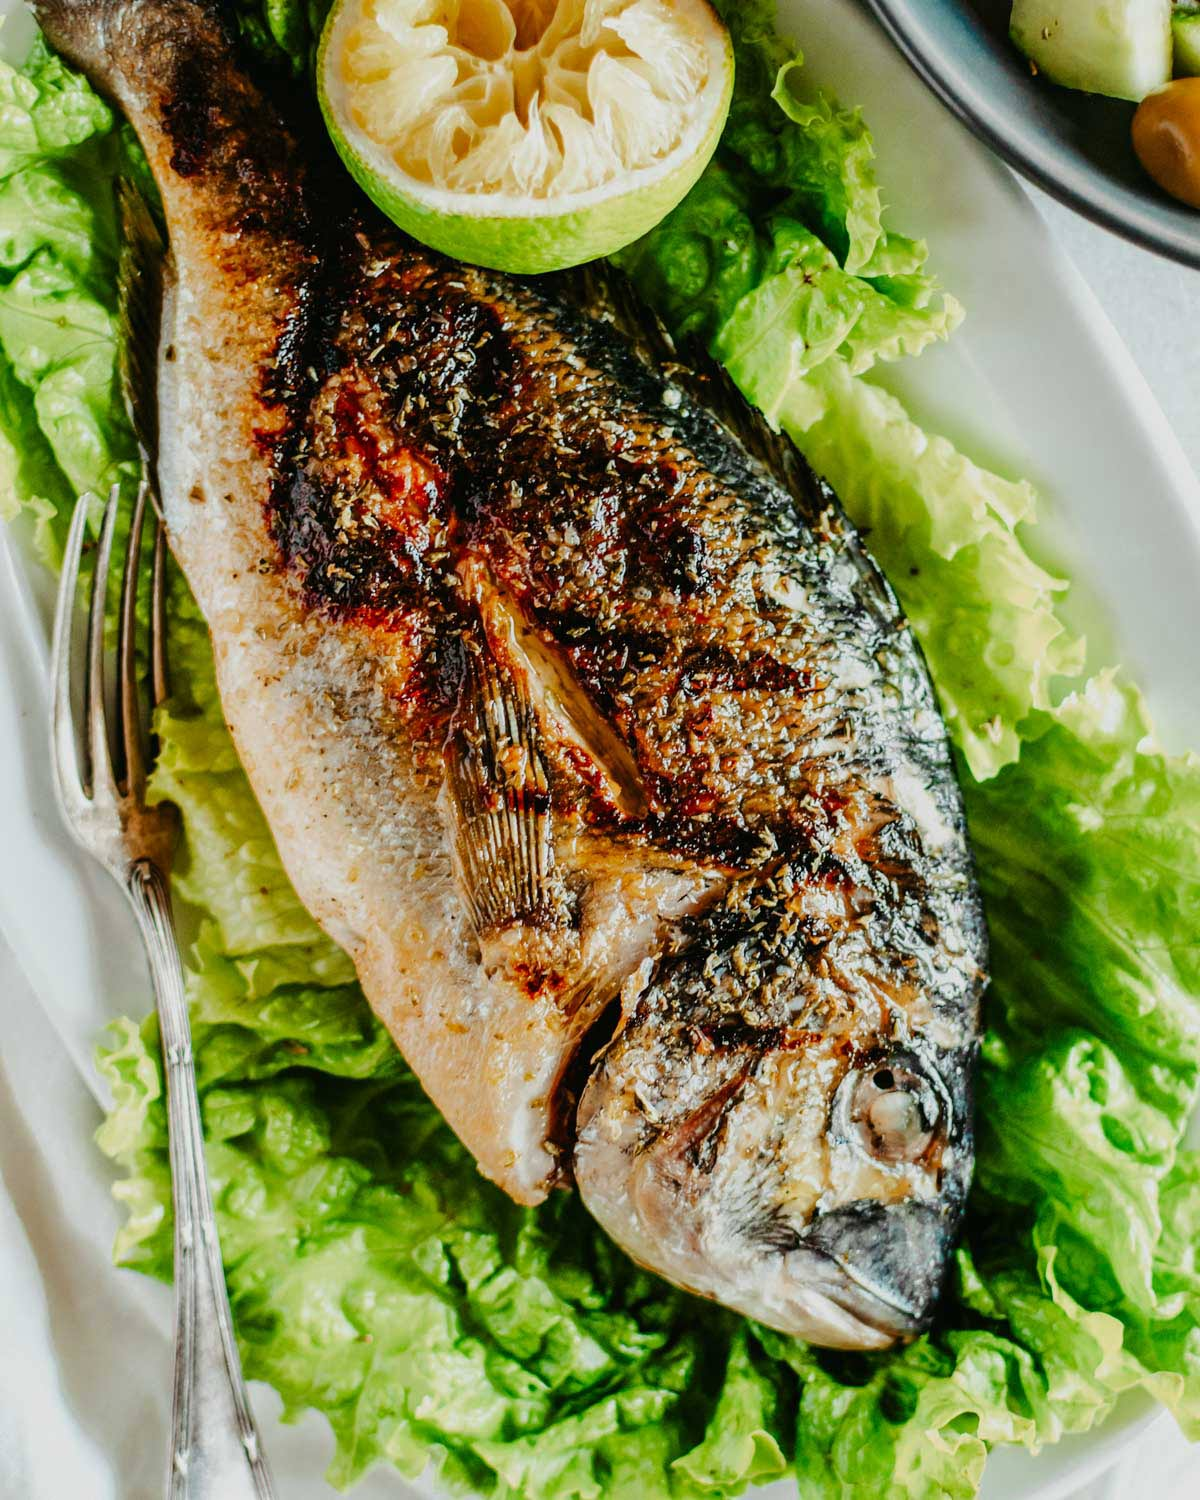 Grilled Sea Bream Served On Lettuce Leaves